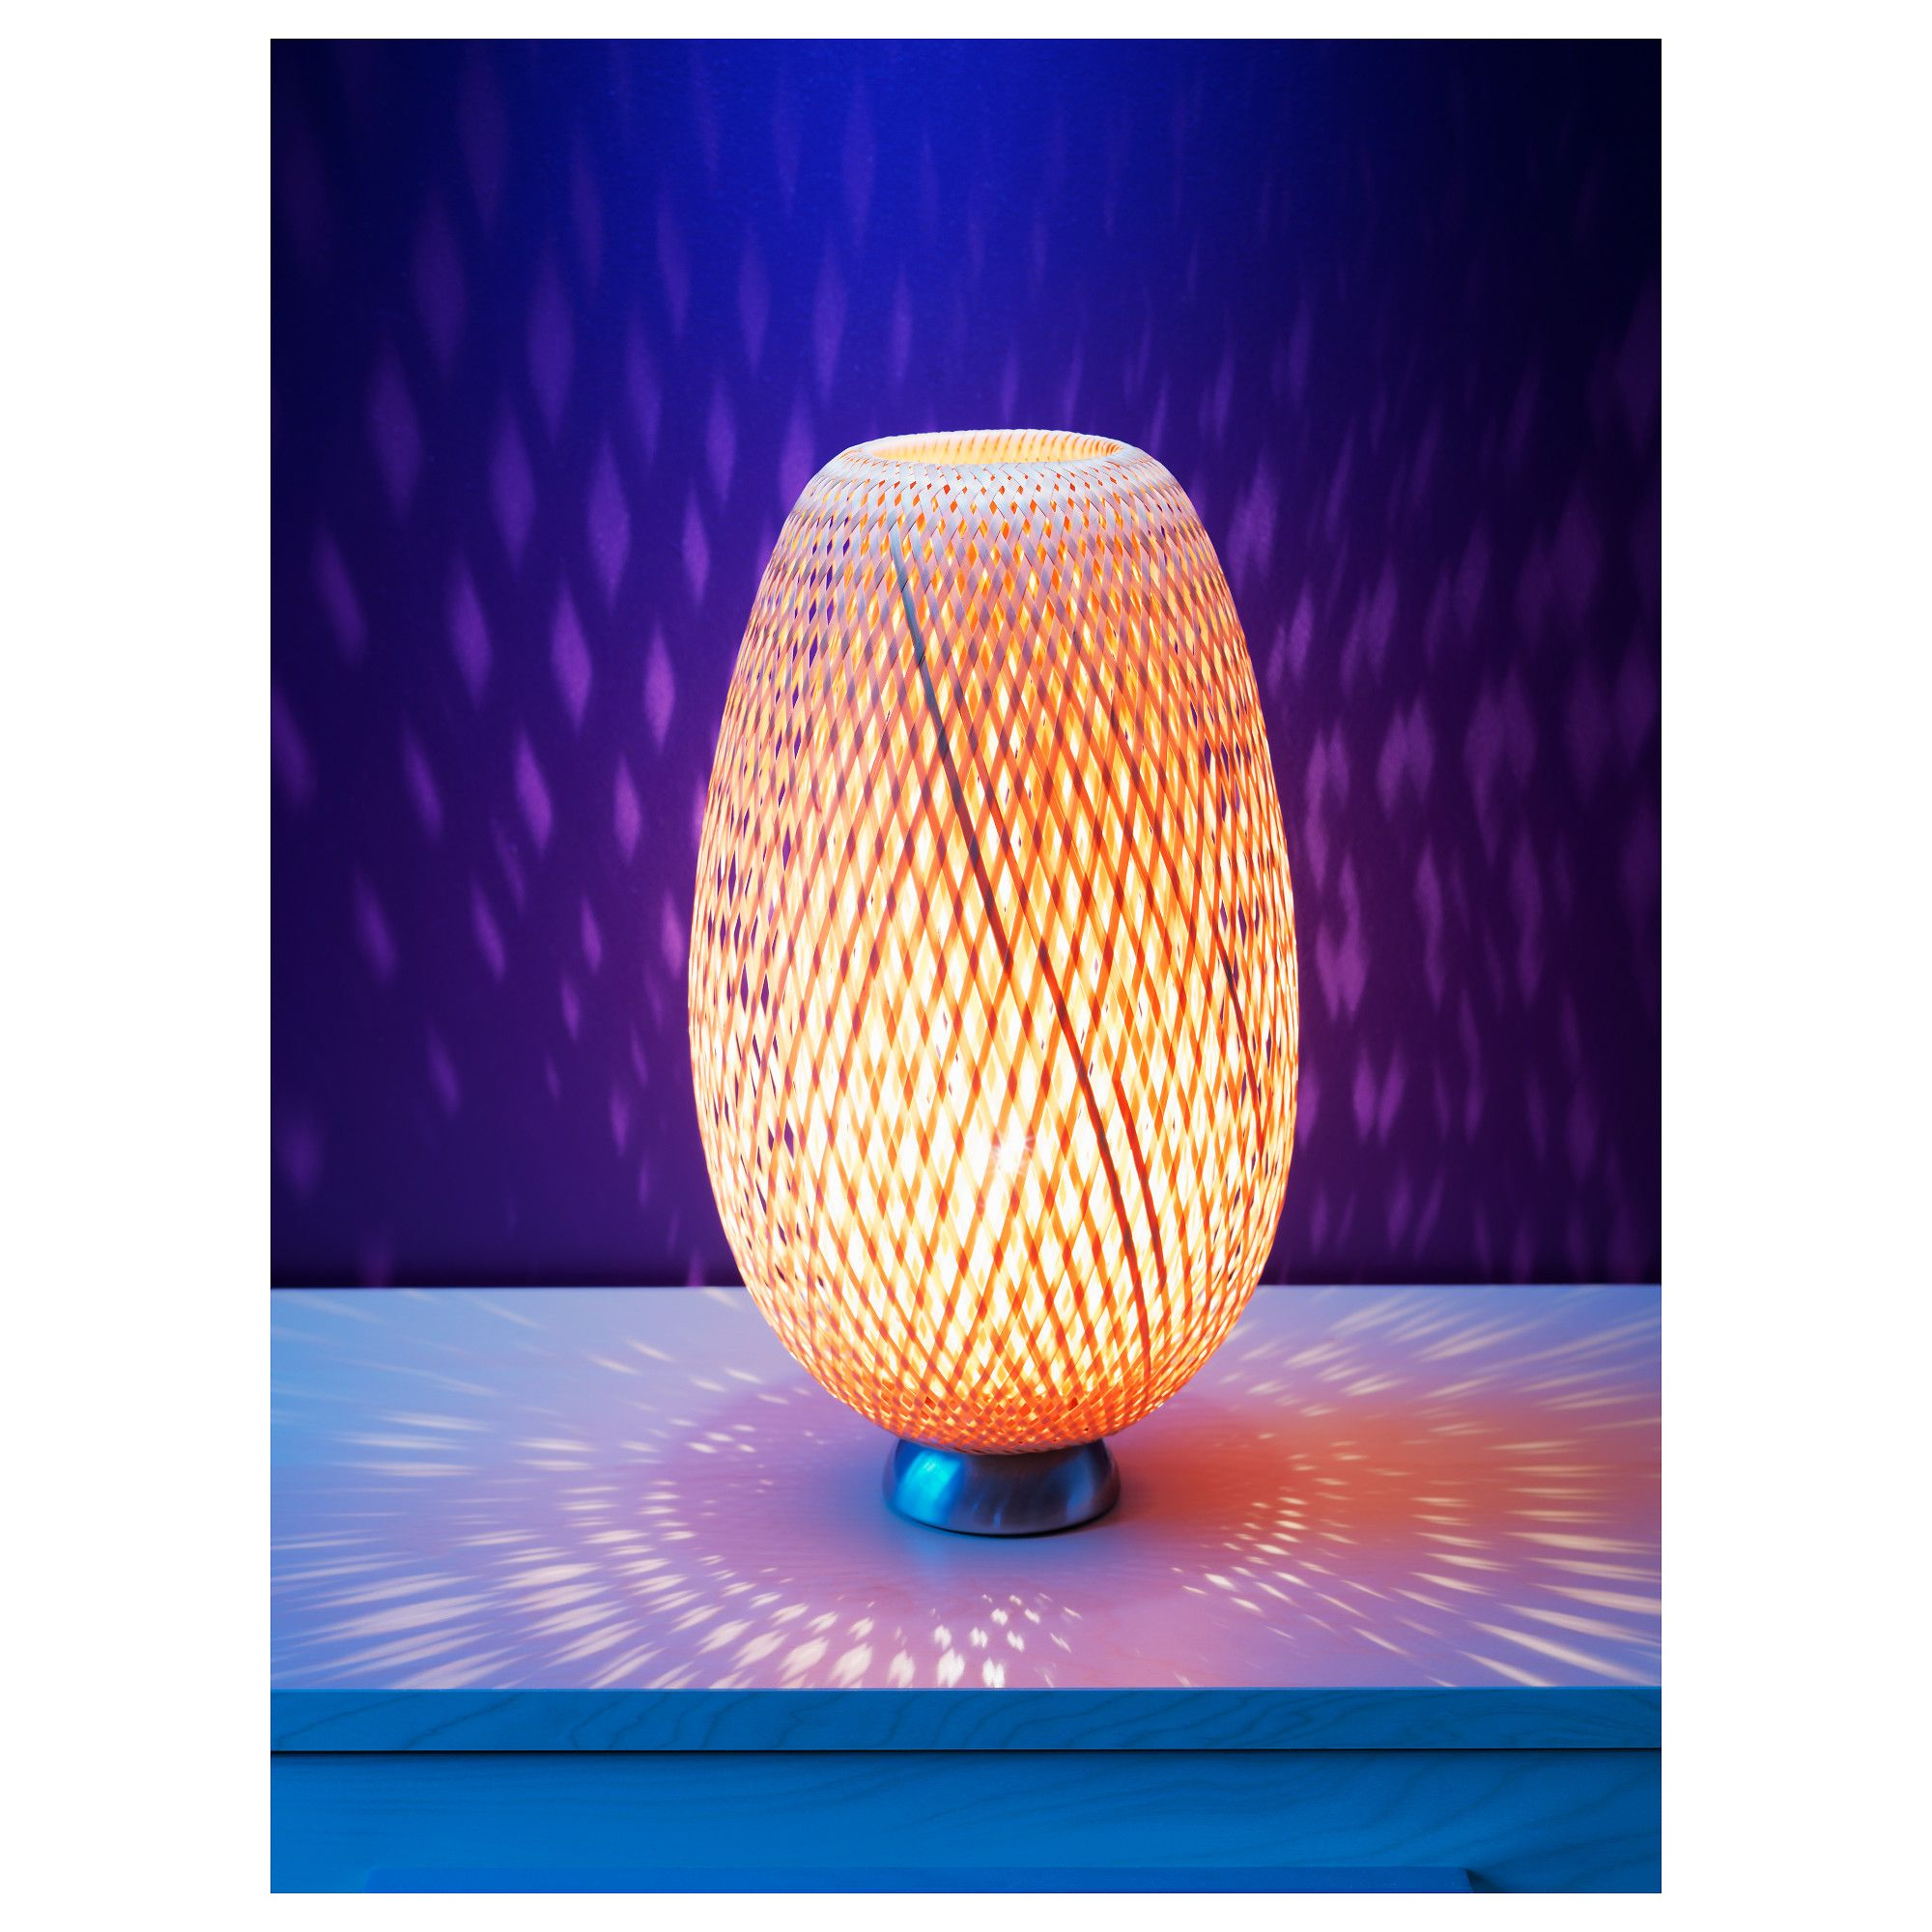 Bja table lamp nickel plated bamboo rattan bamboo art bja table lamp nickel plated bamboo rattan geotapseo Gallery